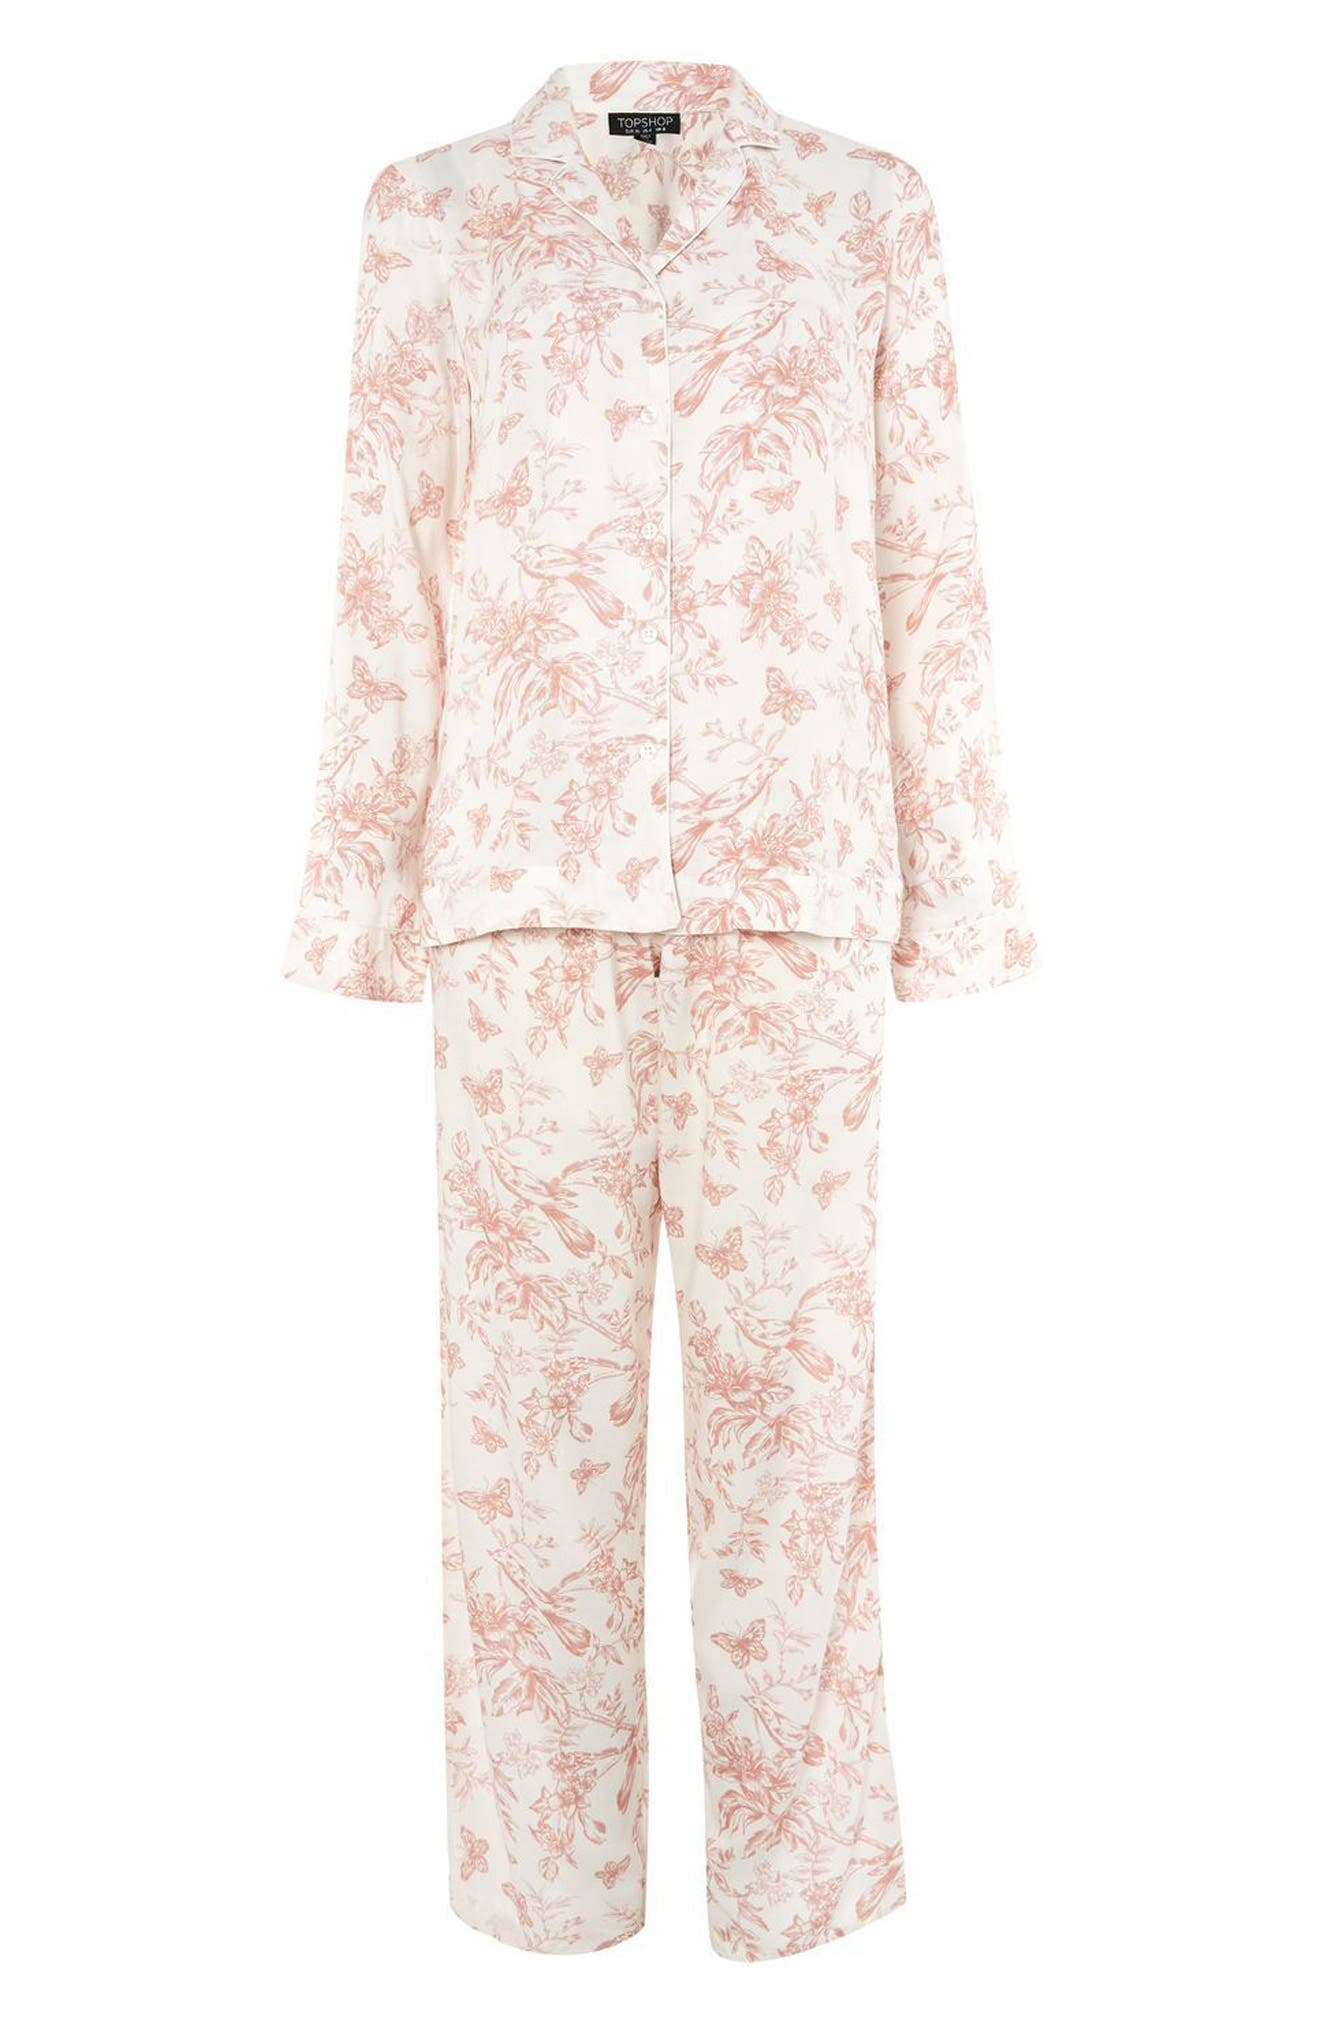 French Floral Pajamas,                             Alternate thumbnail 3, color,                             Light Pink Multi